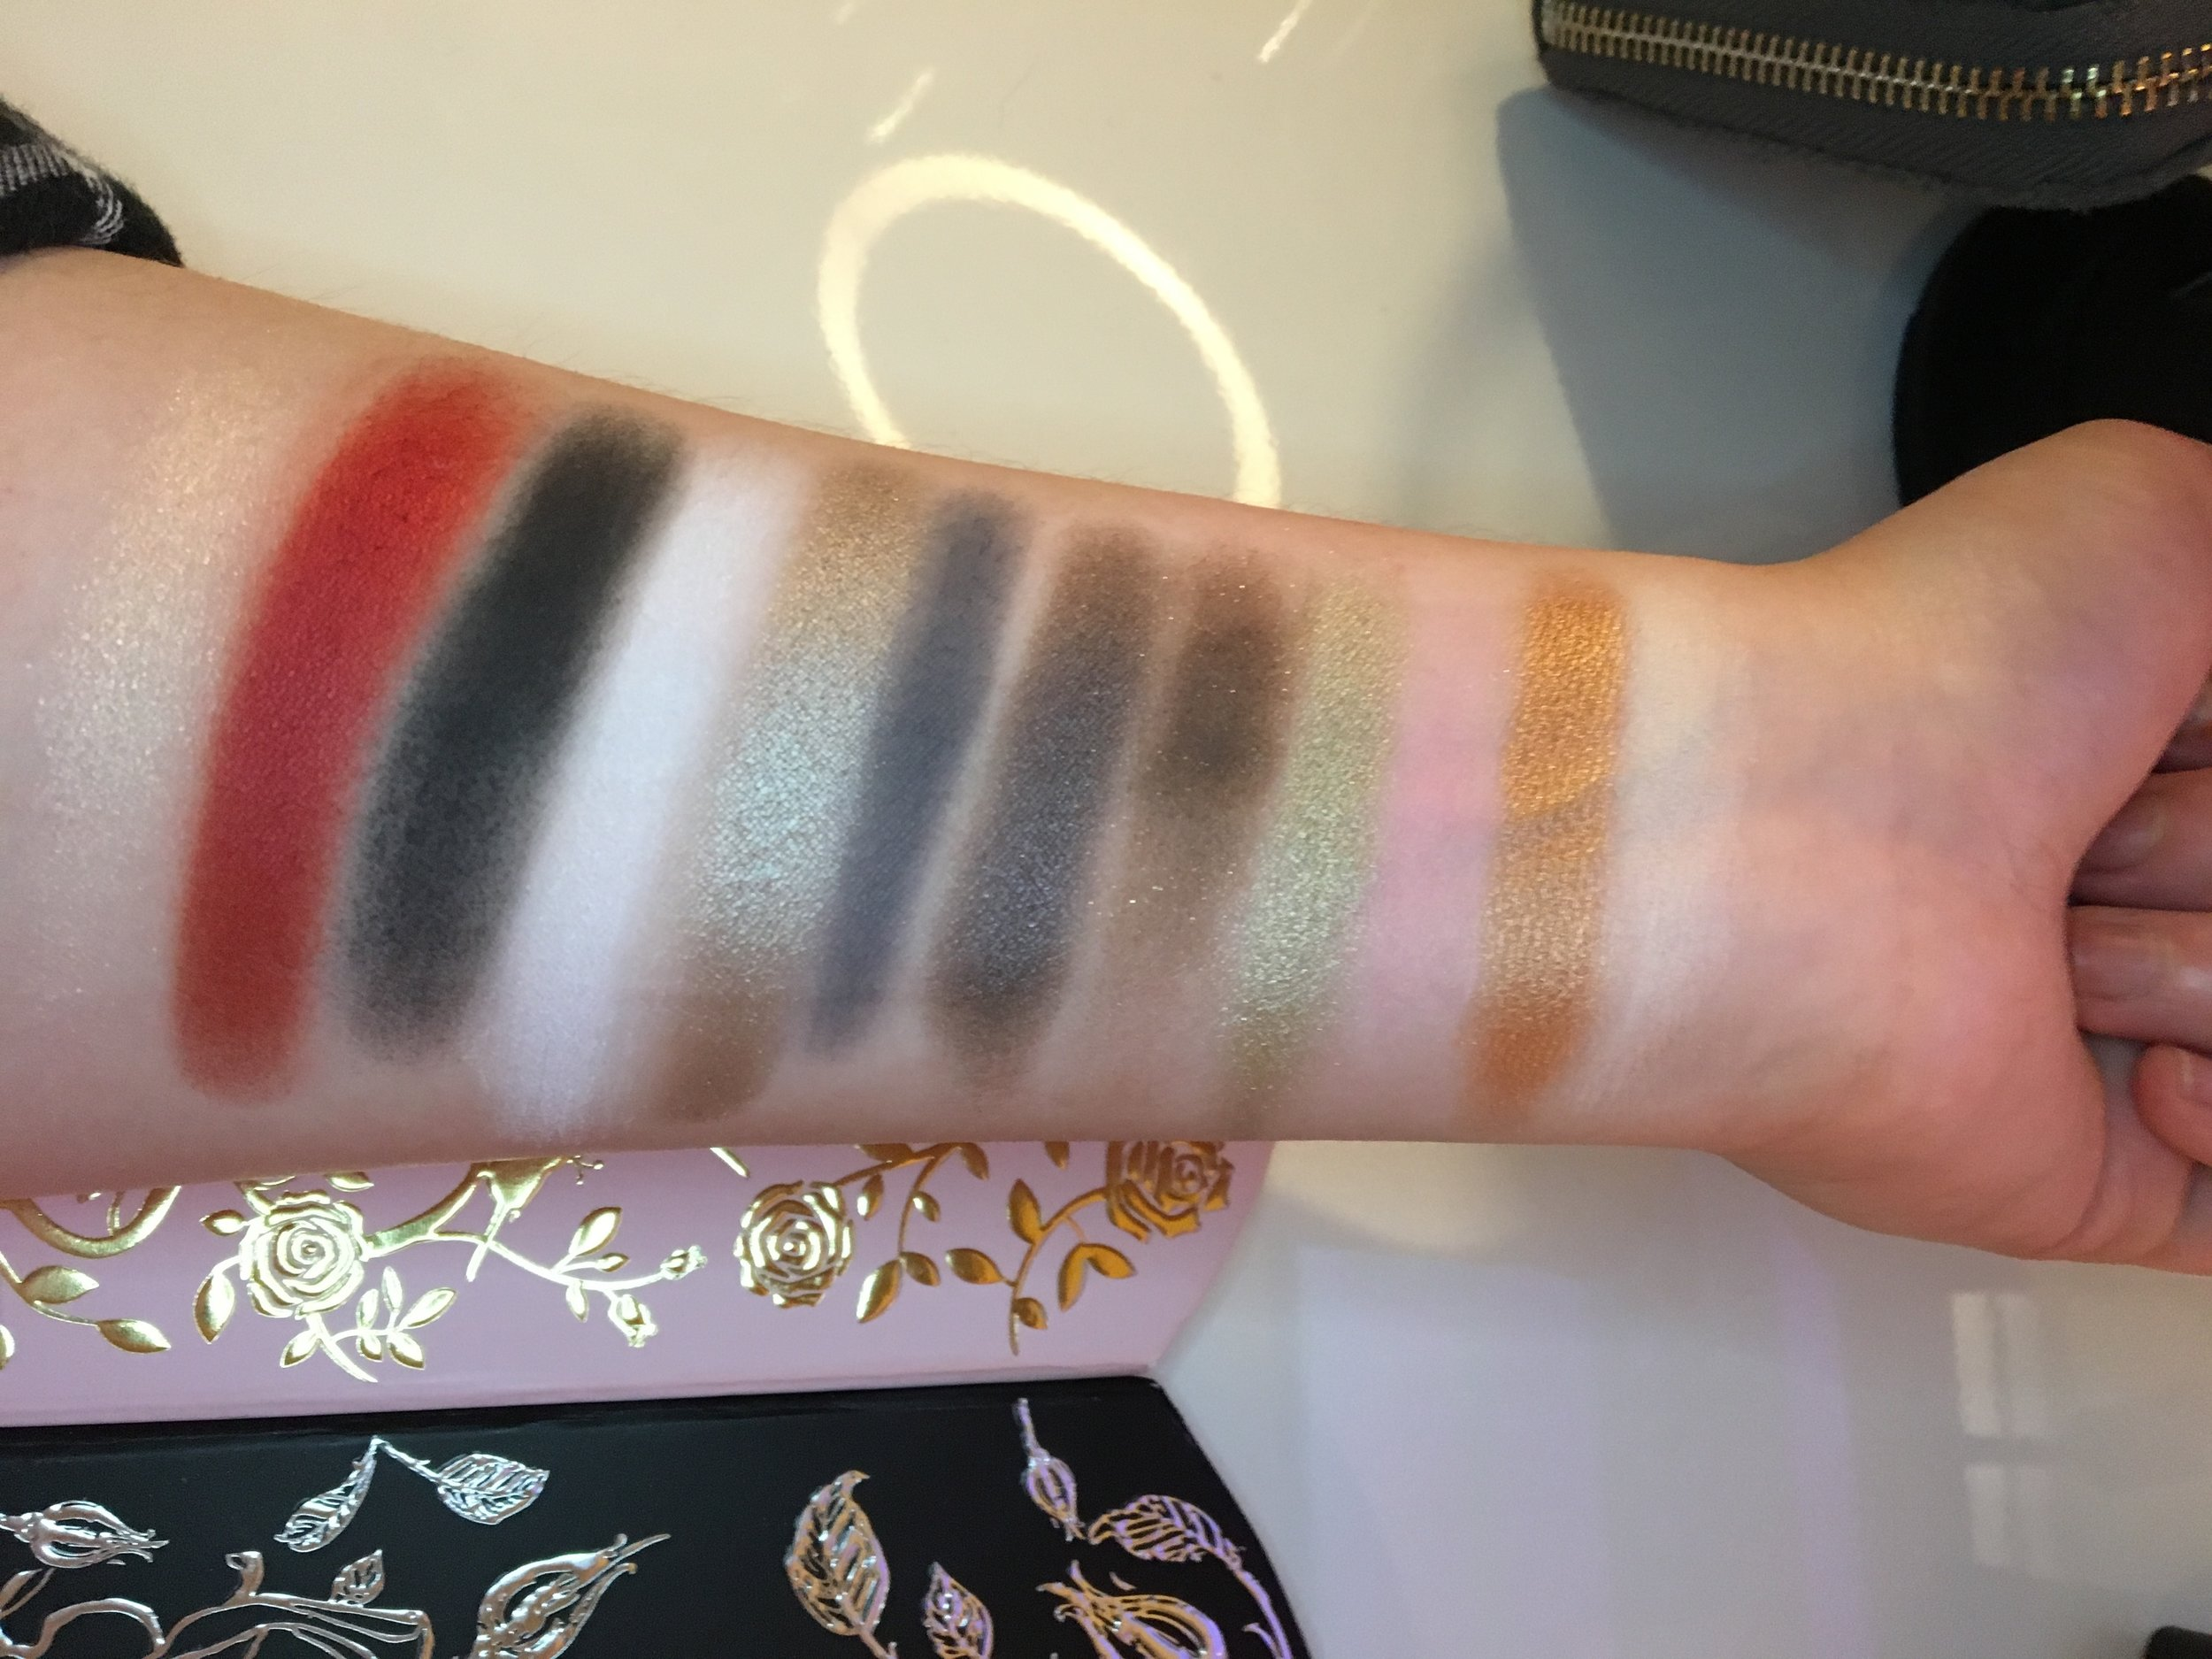 from left to right:  KAT VON D -   lovestruck, swoon, devotion, por vida, darling, yours   TOO FACED -   better together. power couple, heart of gold, lovely, friendspiration, bff